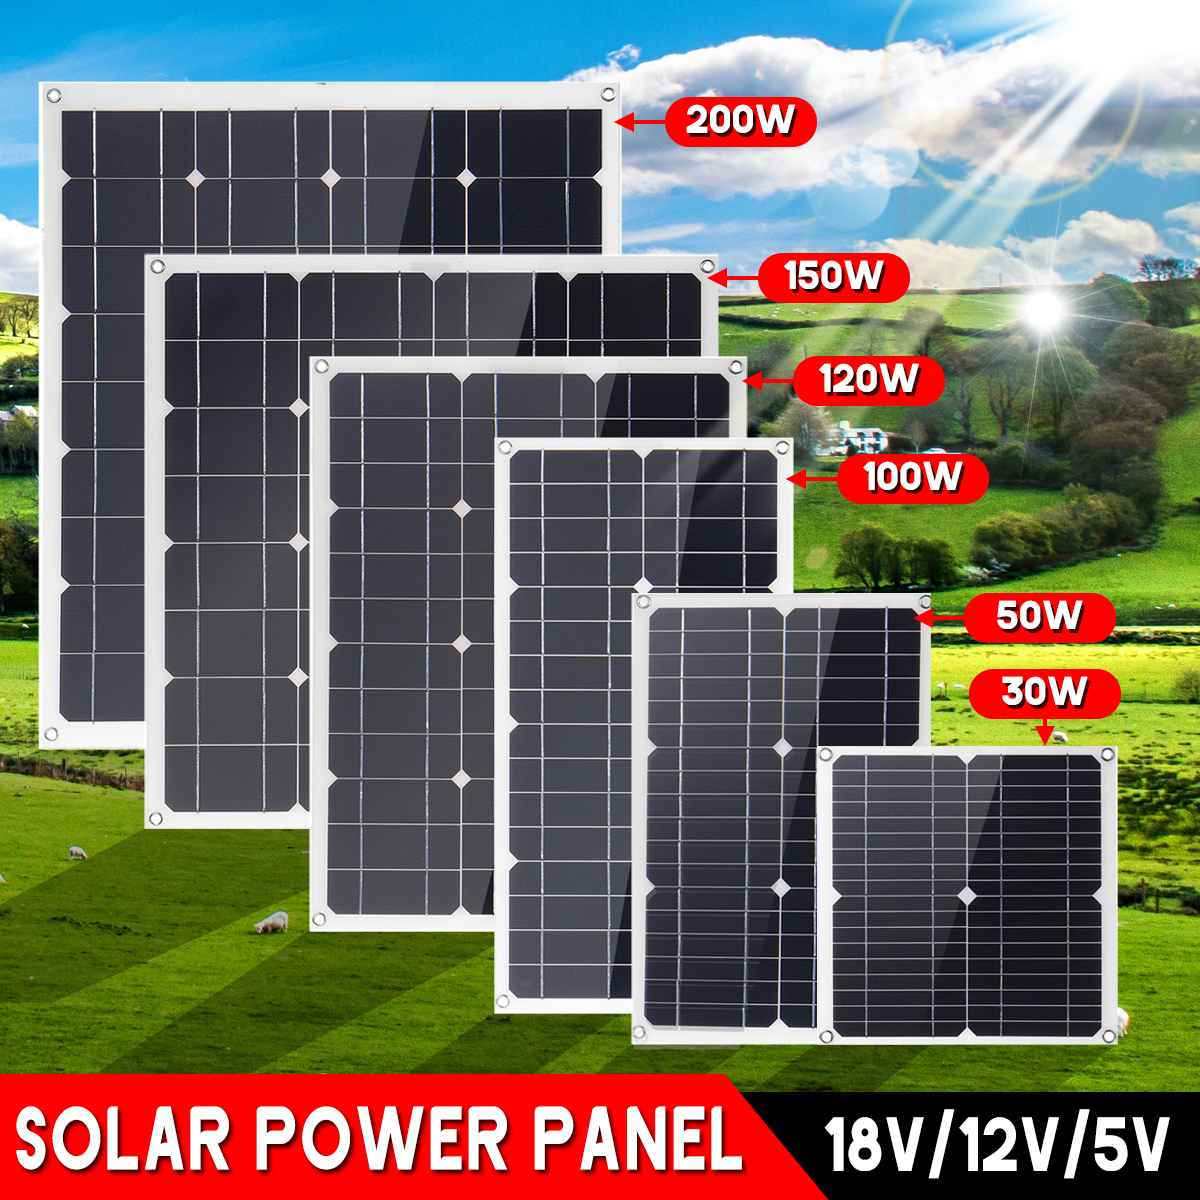 30W/50W/100W/120W/150W/200W Mono Solar Panel 18V DC Dual USB 12V/5V Flexible Solar Charger For Car RV Boat Battery Charge